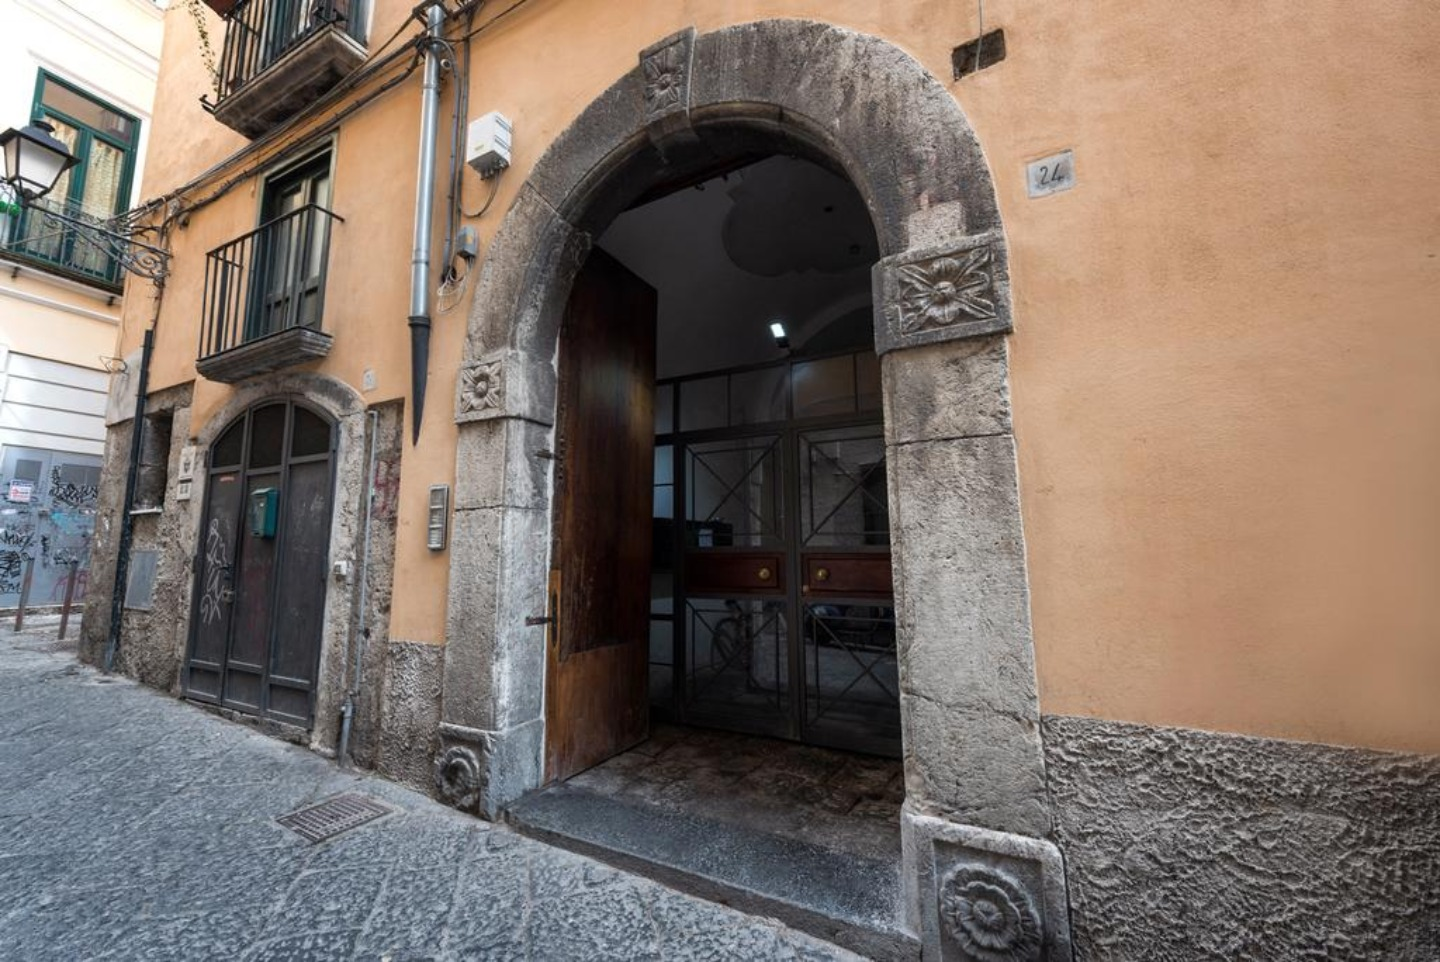 A statue of a stone building at Bed and Breakfast Salerno Centro.